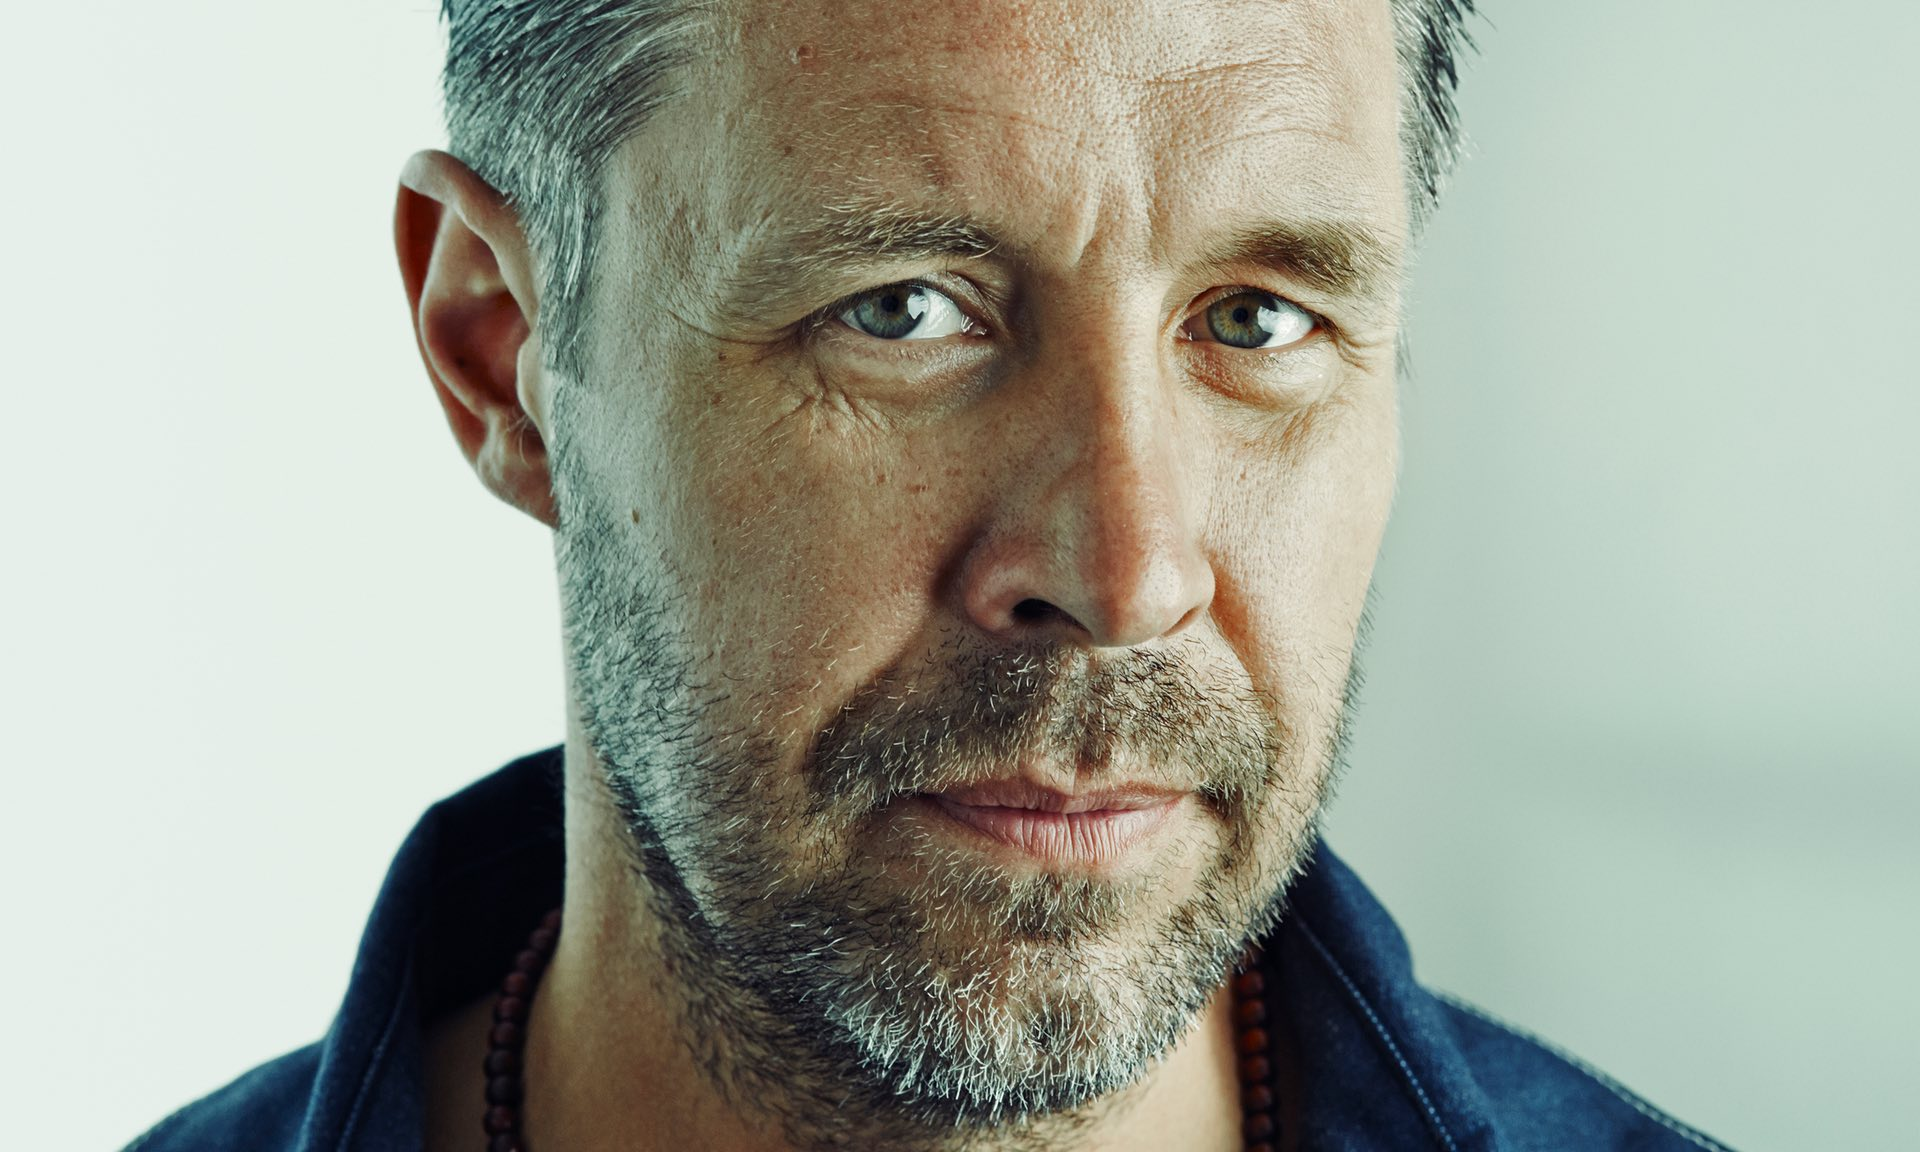 Phil Fisk photographs Paddy Considine